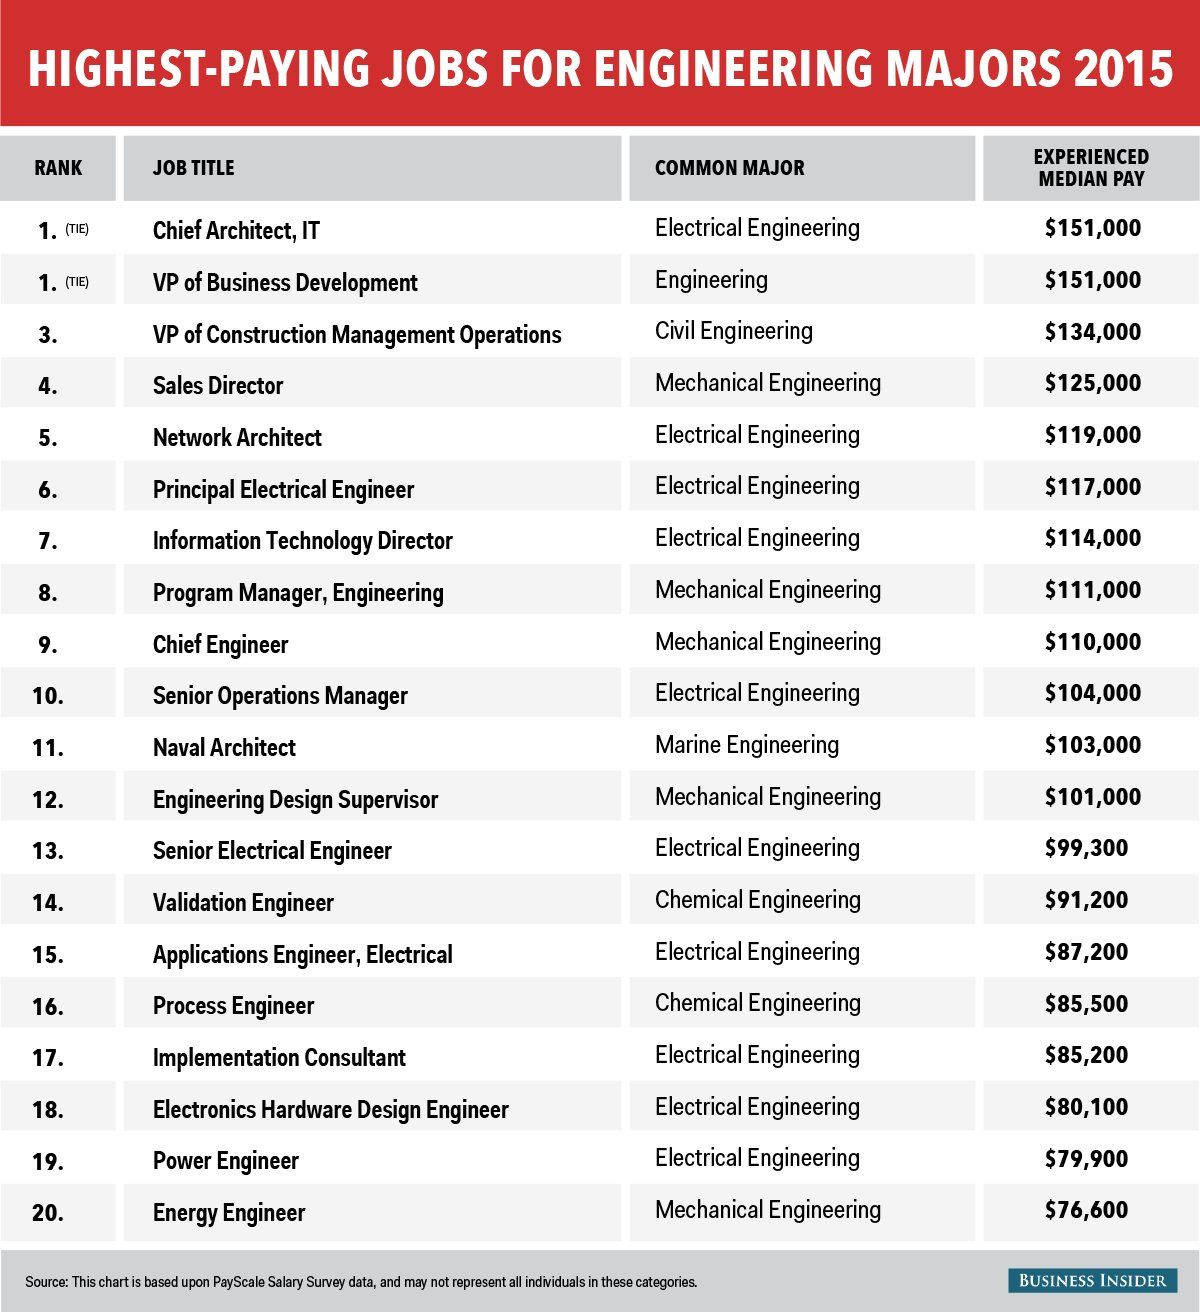 The 20 highest-paying jobs for engineering majors